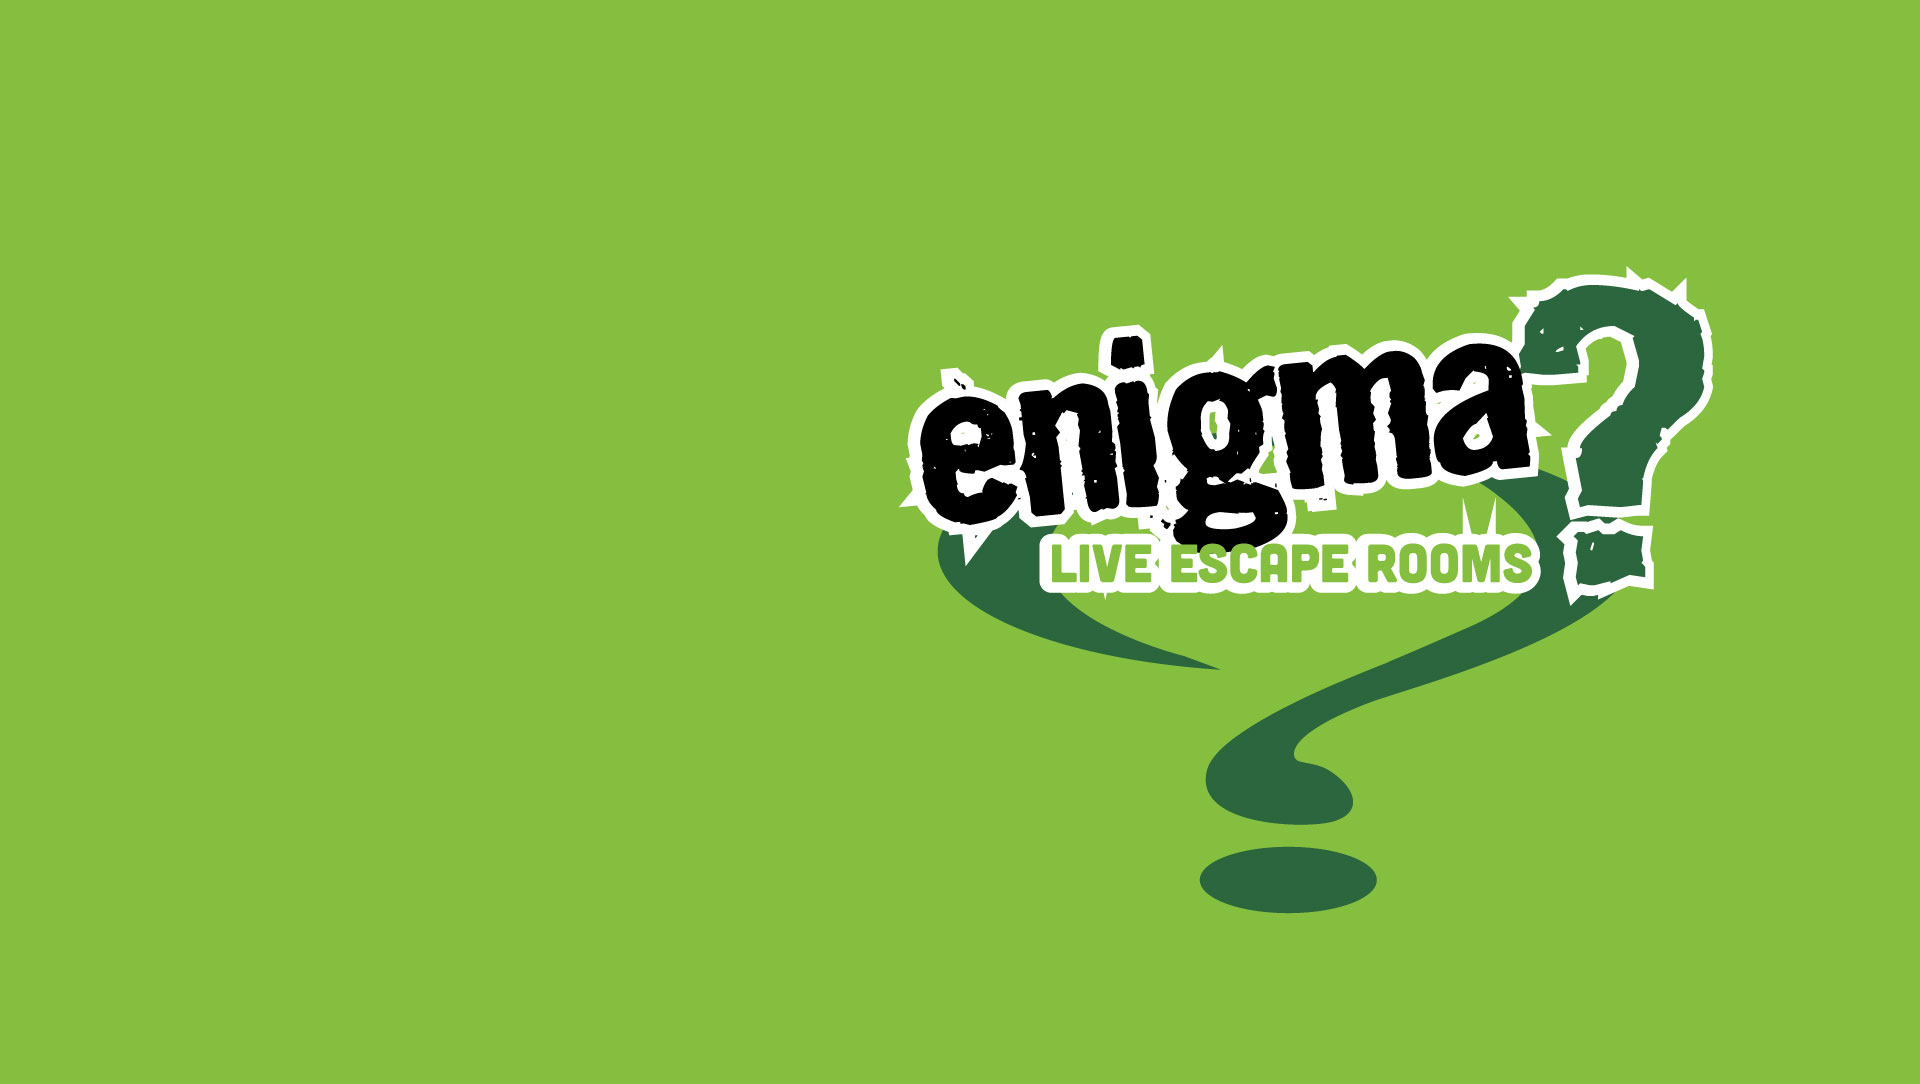 Enigma escape rooms logo on a green background